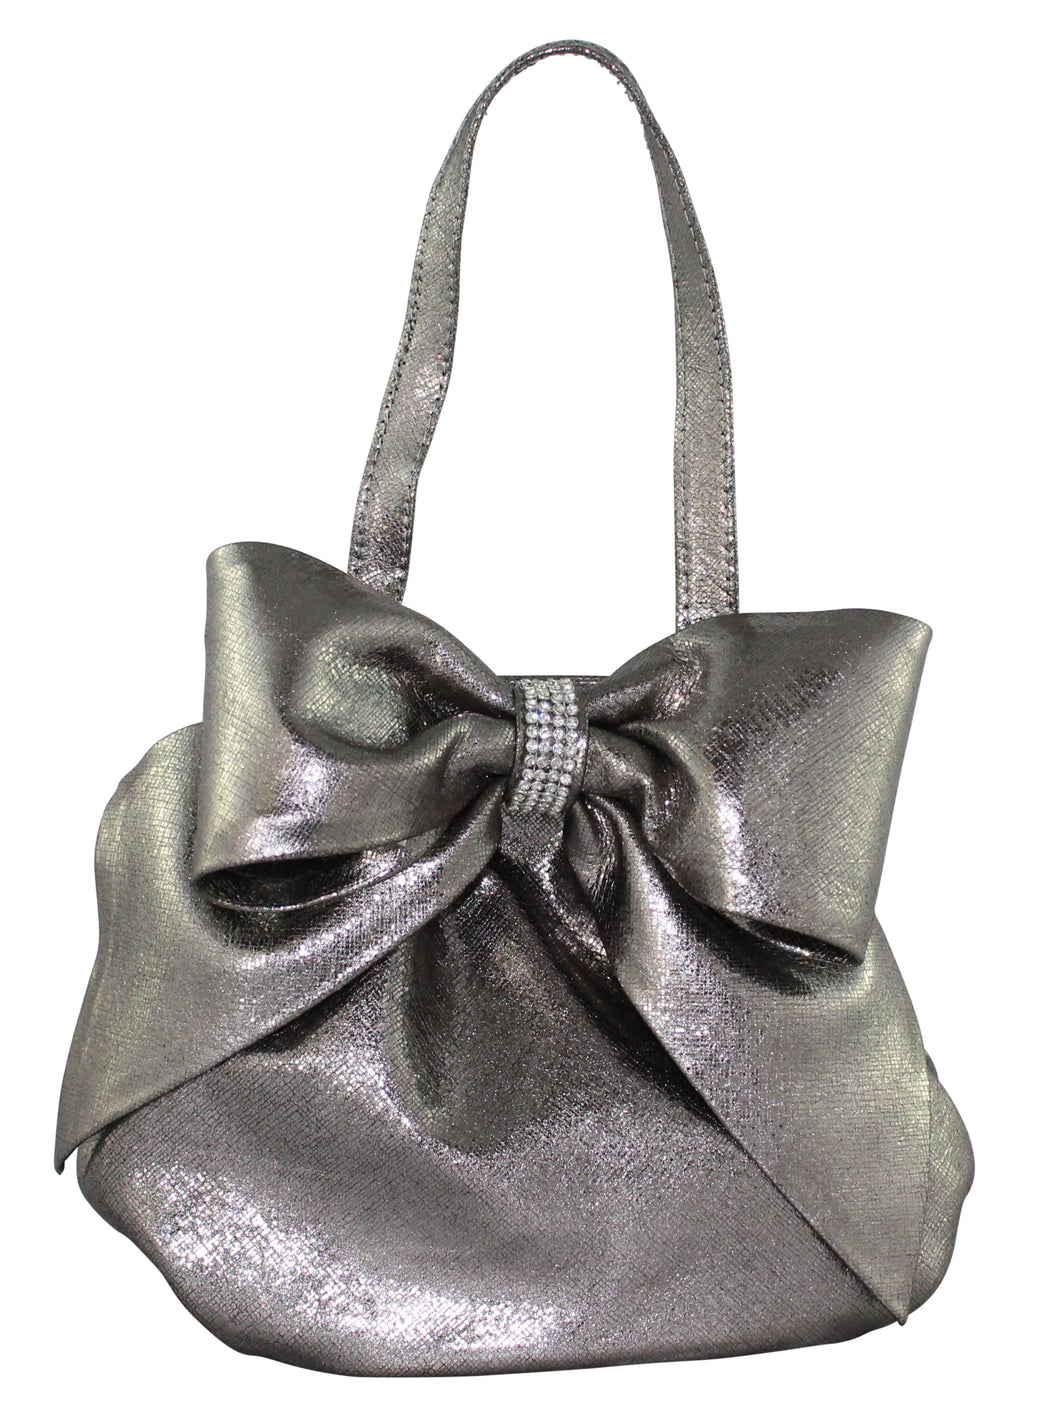 Gunmetal Evening Handbag